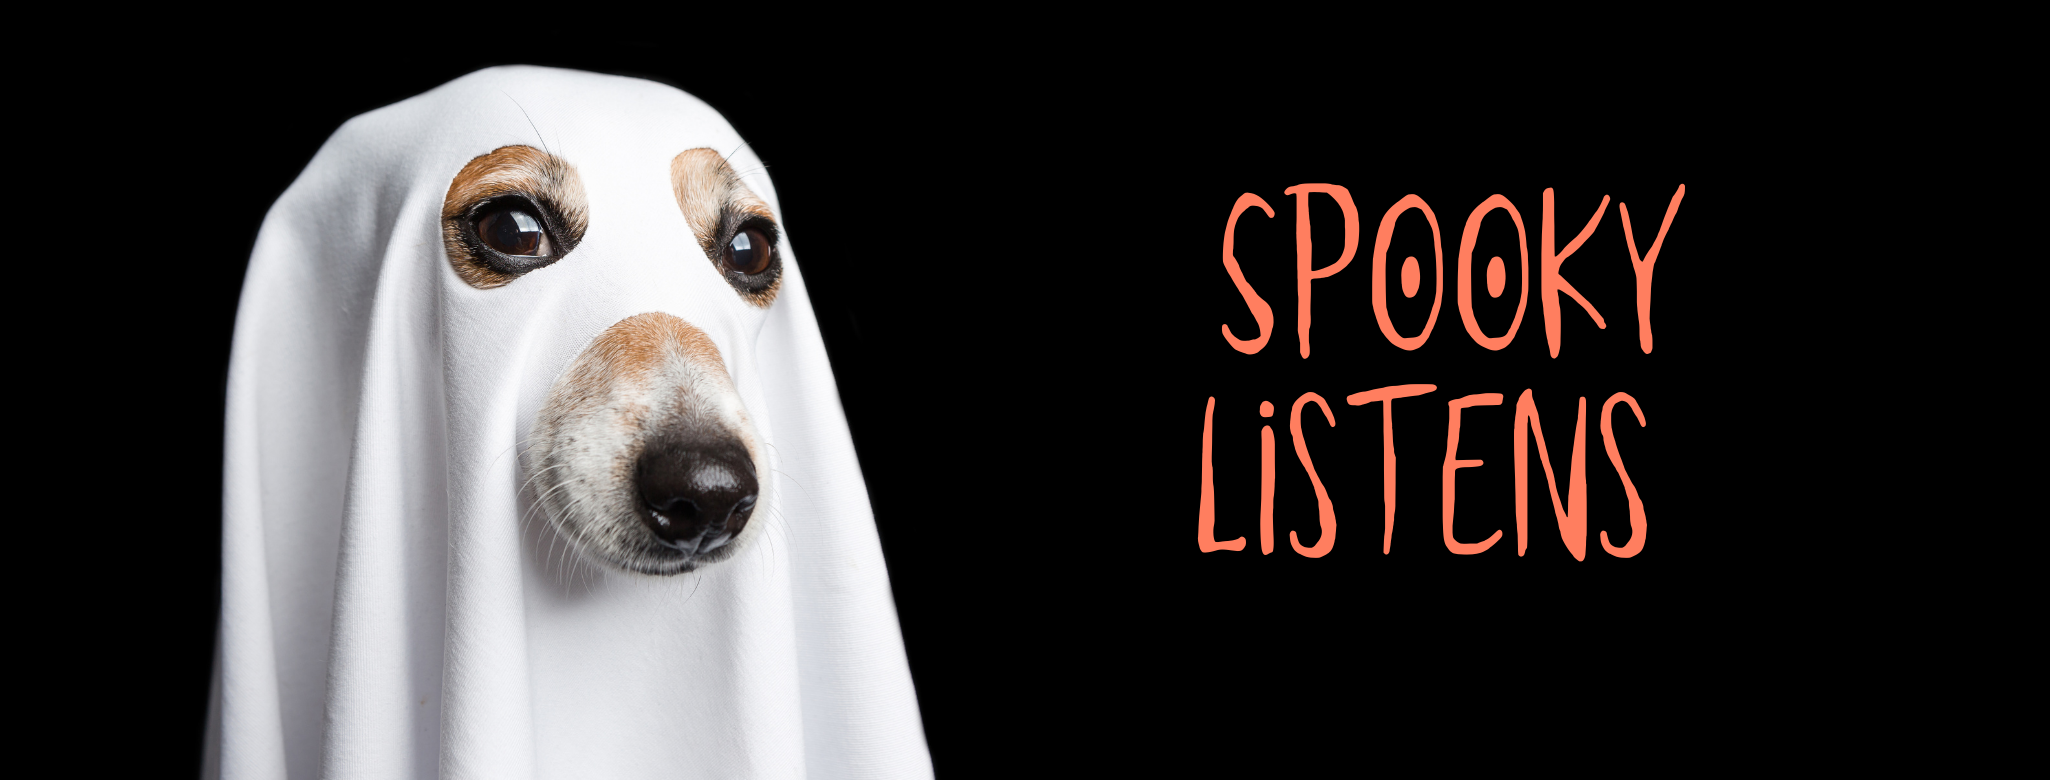 A black background with a photo of a dog wearing a sheet with nose and eye holes cut out so it looks like a ghost. Headline reads Spooky Listens